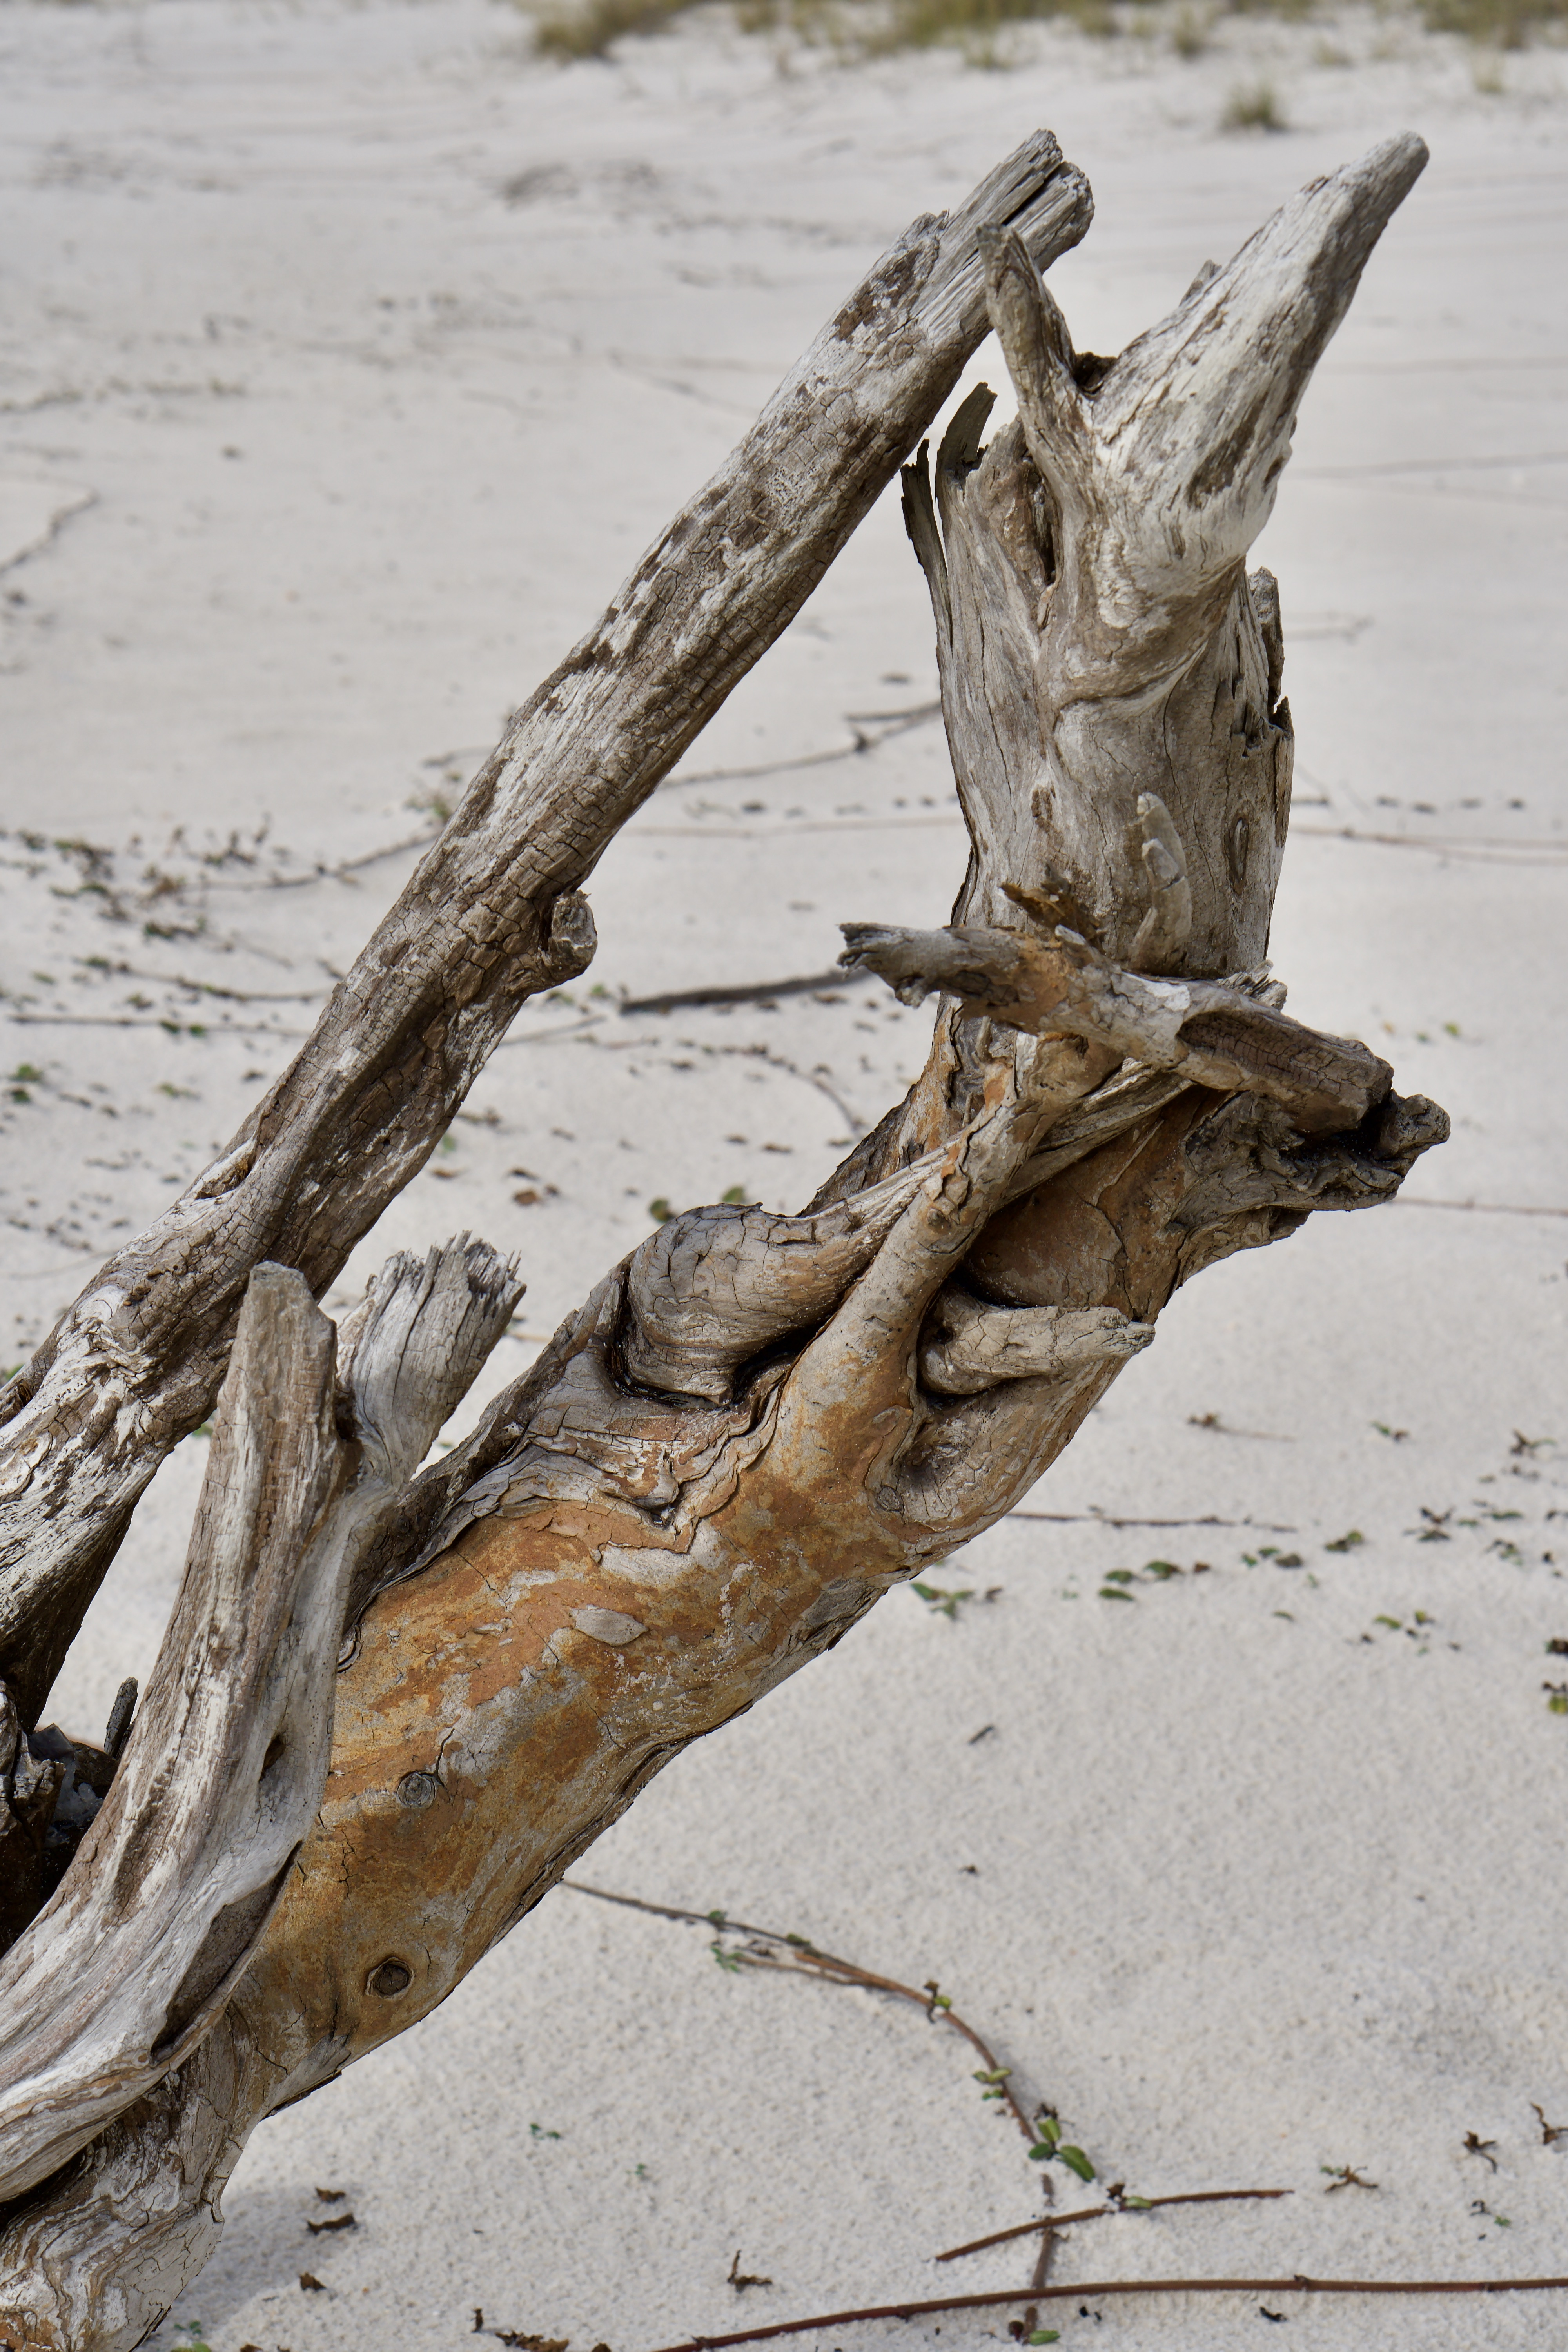 A large piece of driftwood on the beach